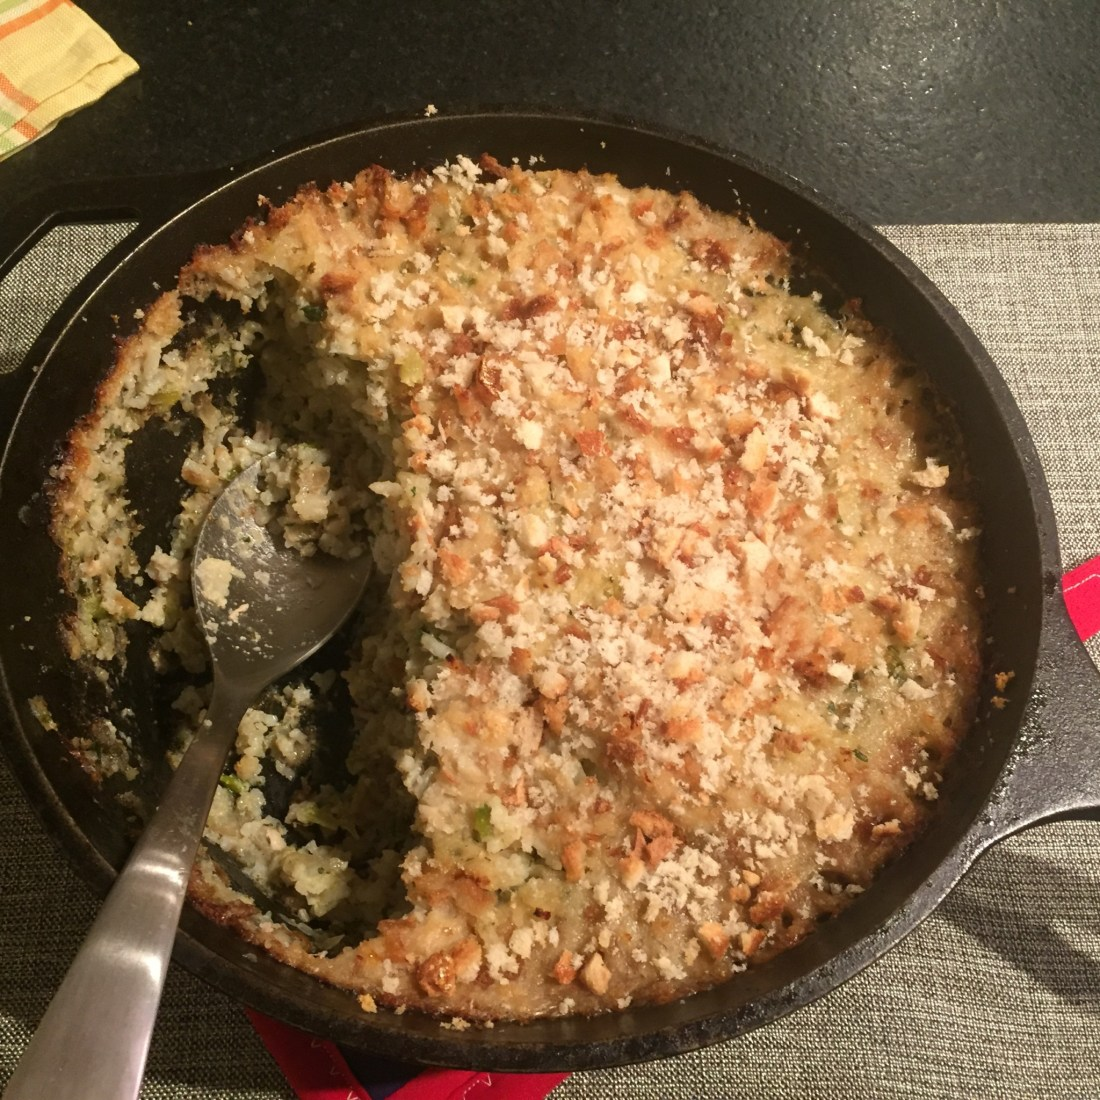 Deep skillet of oyster and rice dressing.